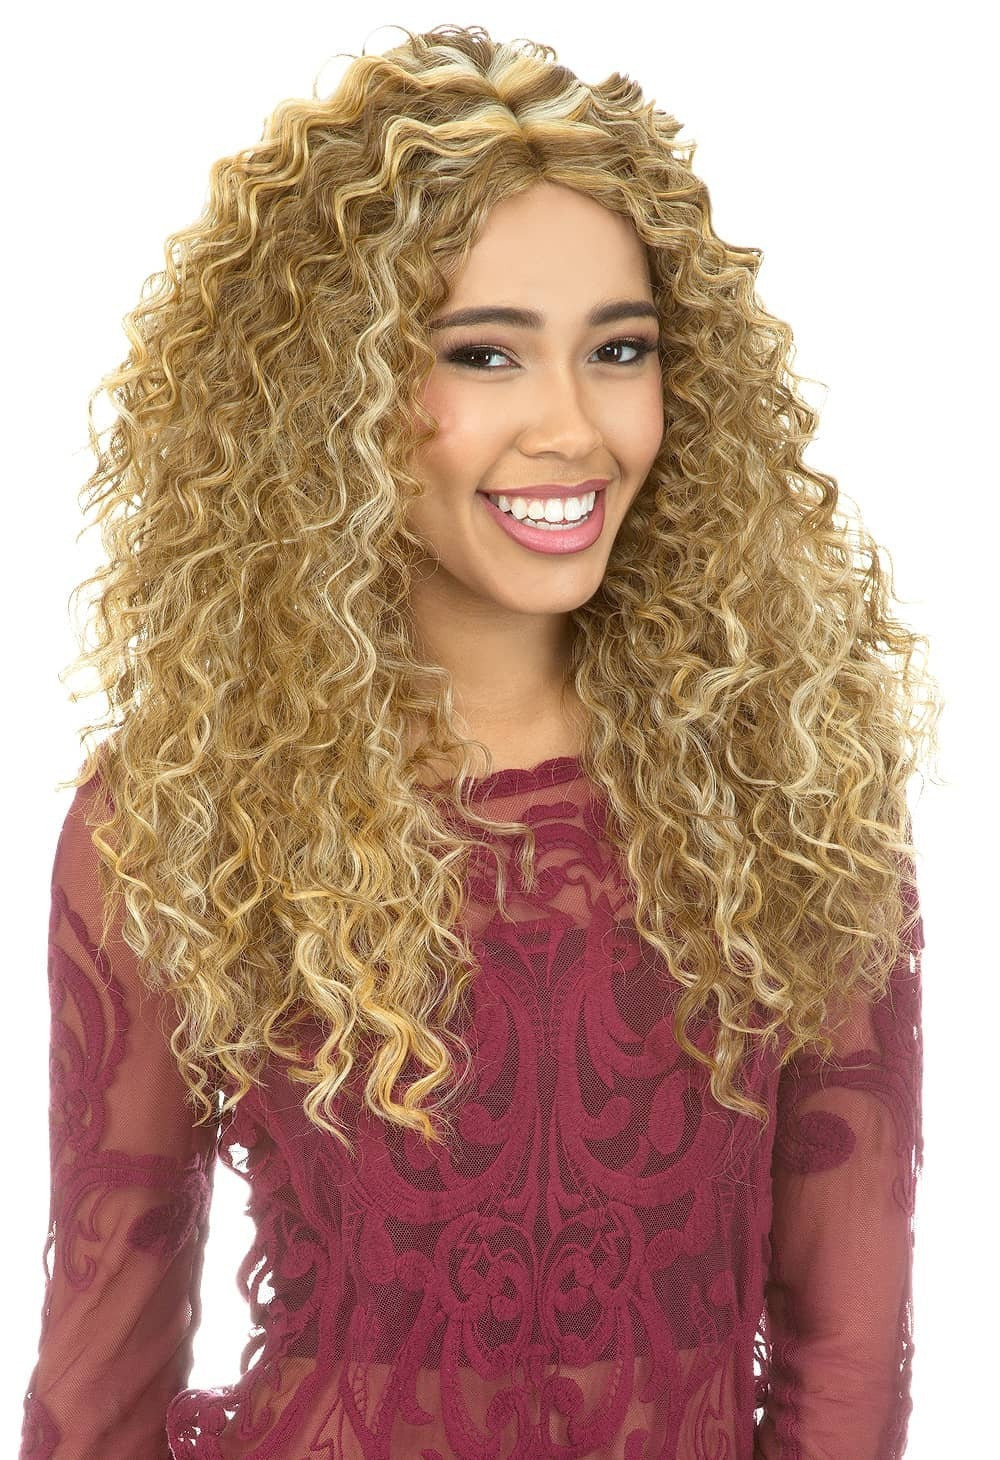 New Born Free Magic Curved Lace Front Wig - MLC193